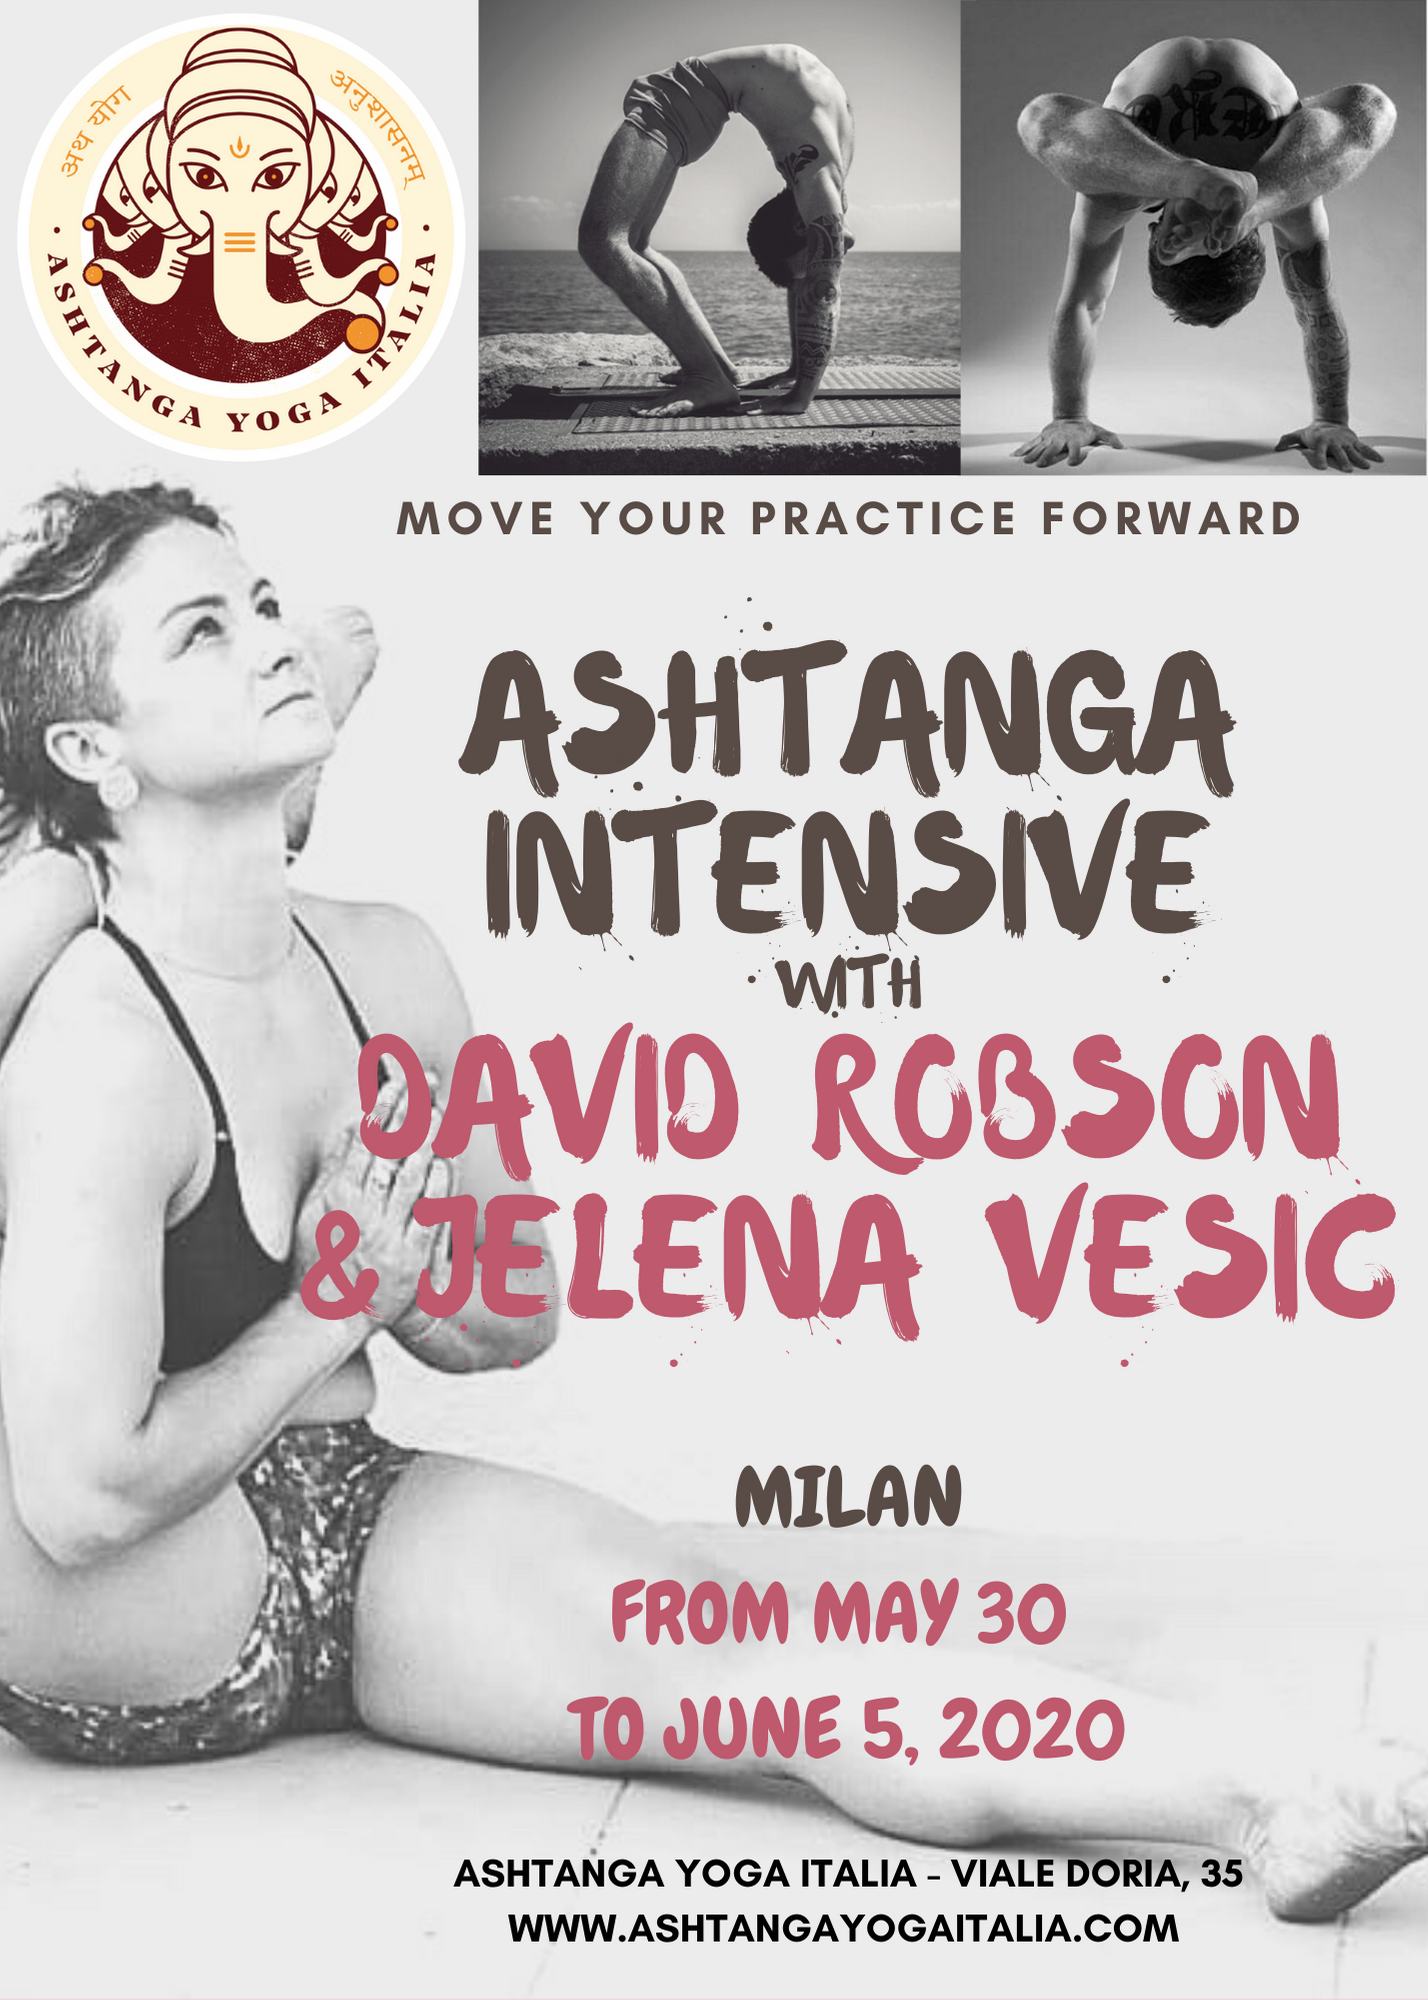 david-robson-jelena-vesic-ashtanga-yoga-italia-milano-ENGLISH